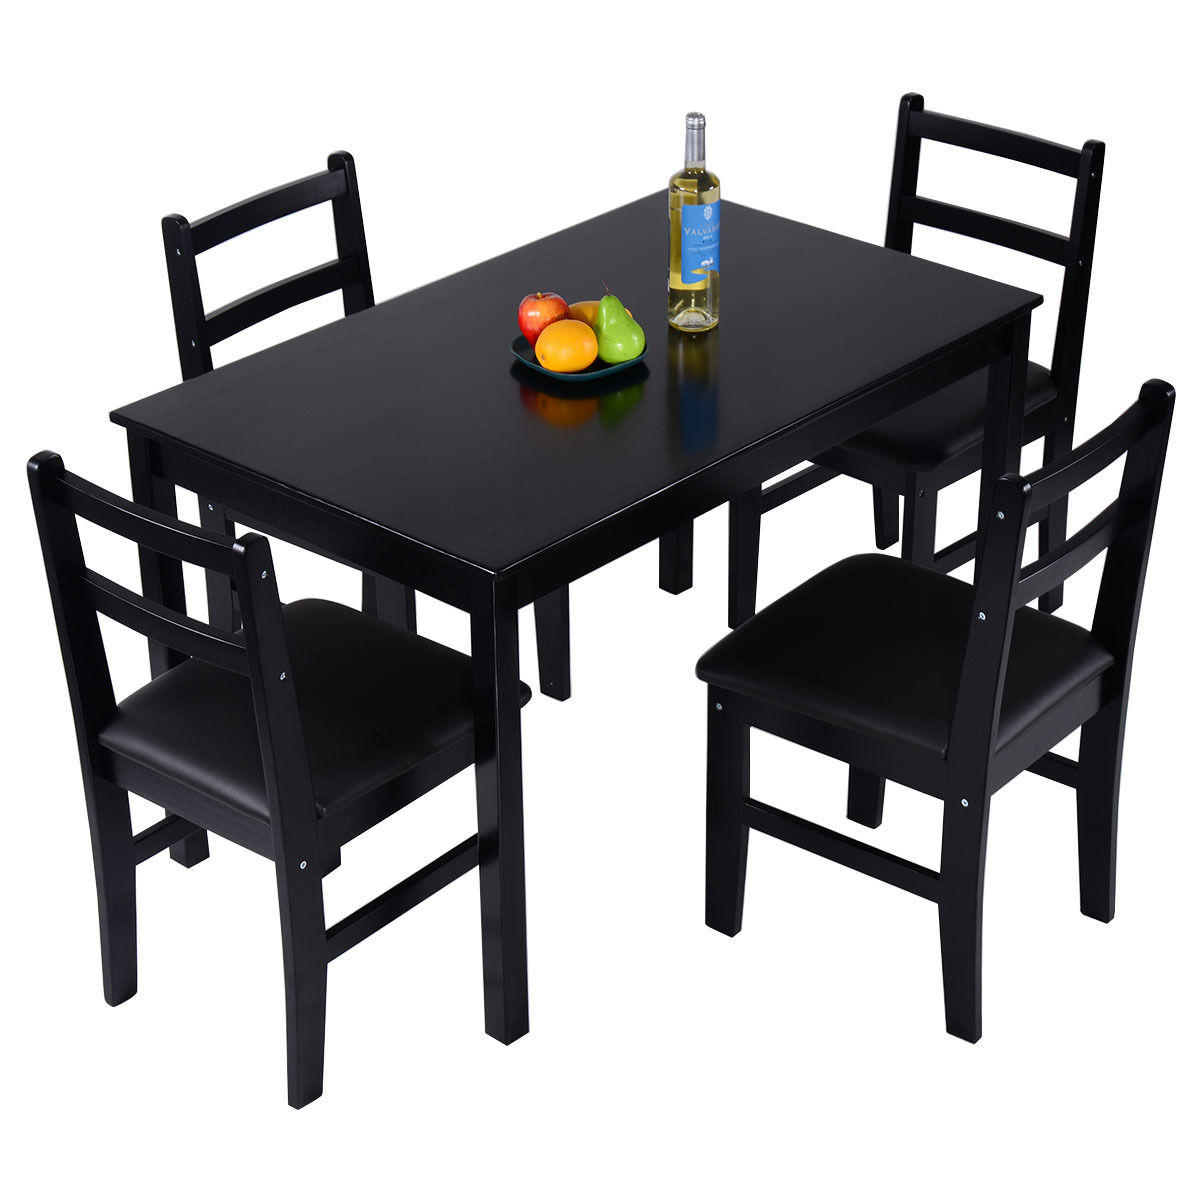 Costway 5 Pcs Pine Wood Dining Room Set Table And 4 Upholstered Chair Breakfast Furniture by Costway